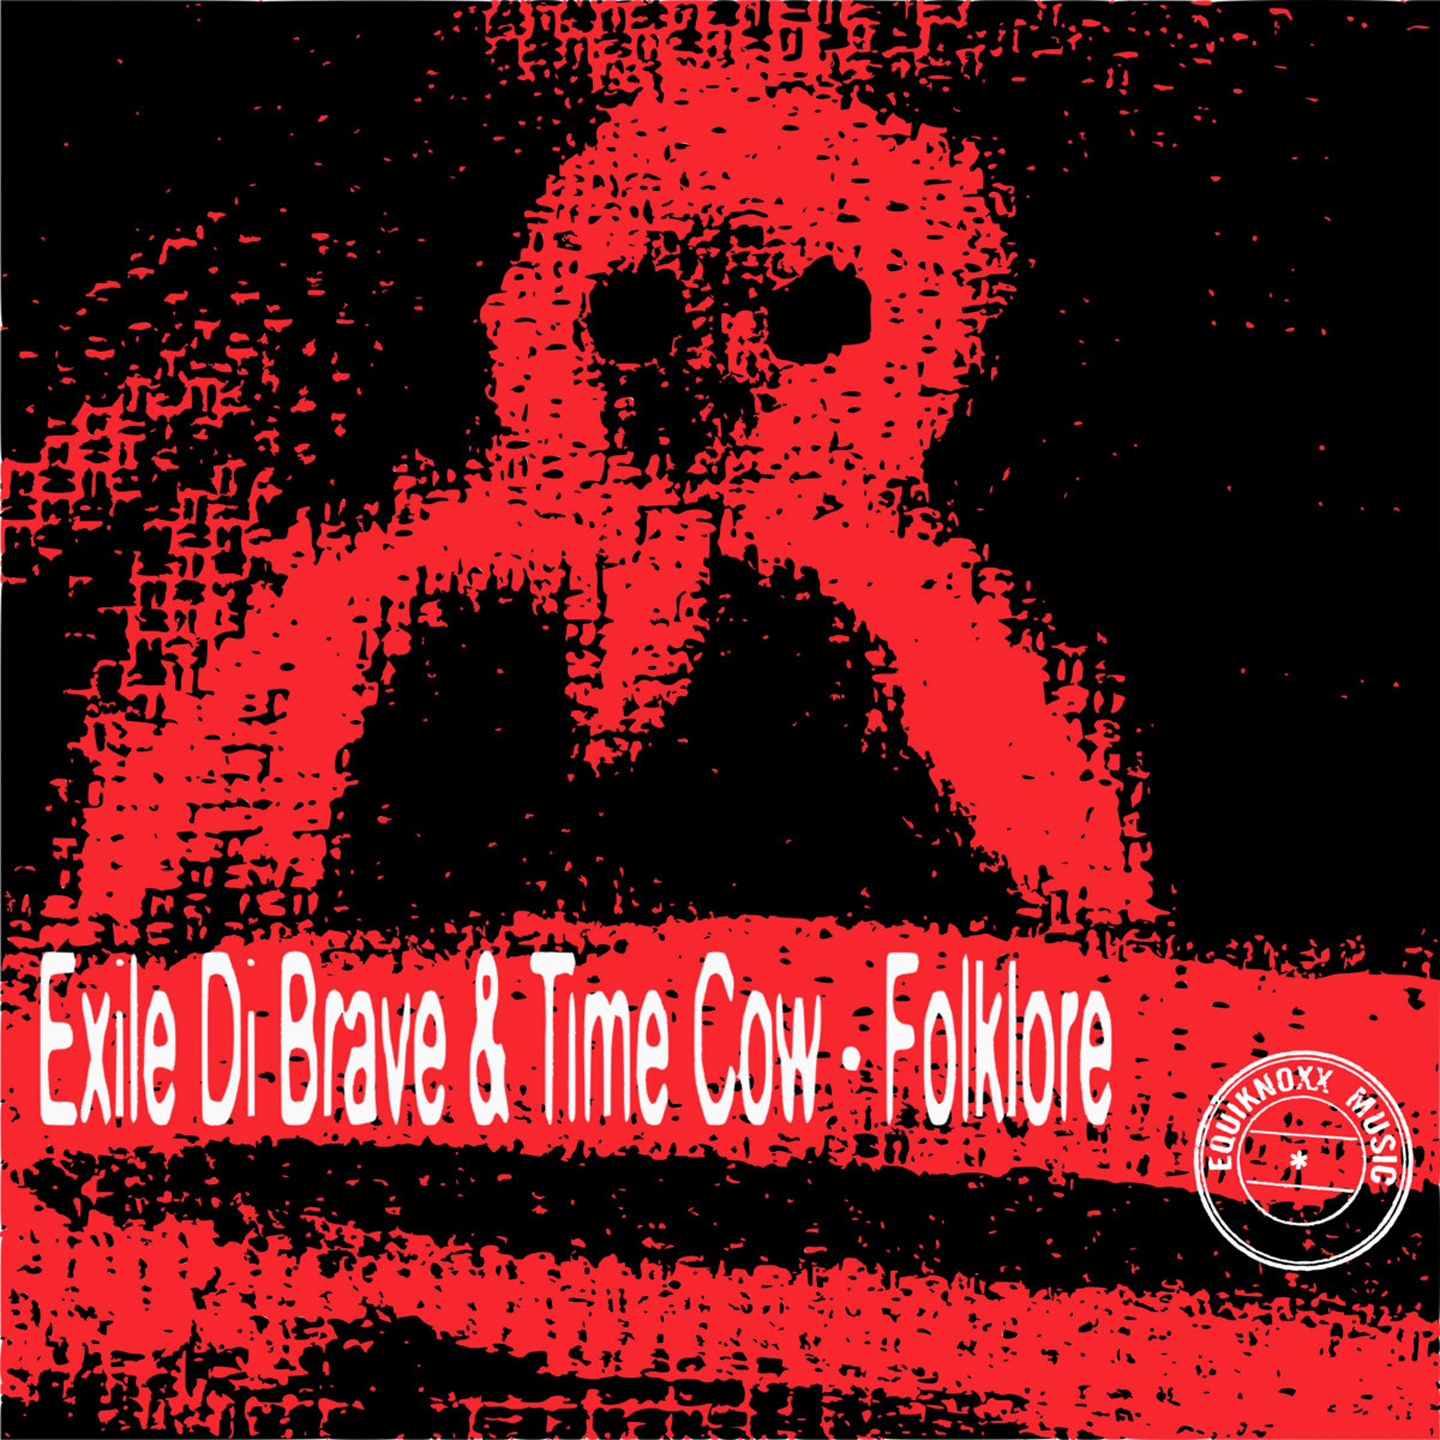 Time Cow and Exile Di Brave - Folklore